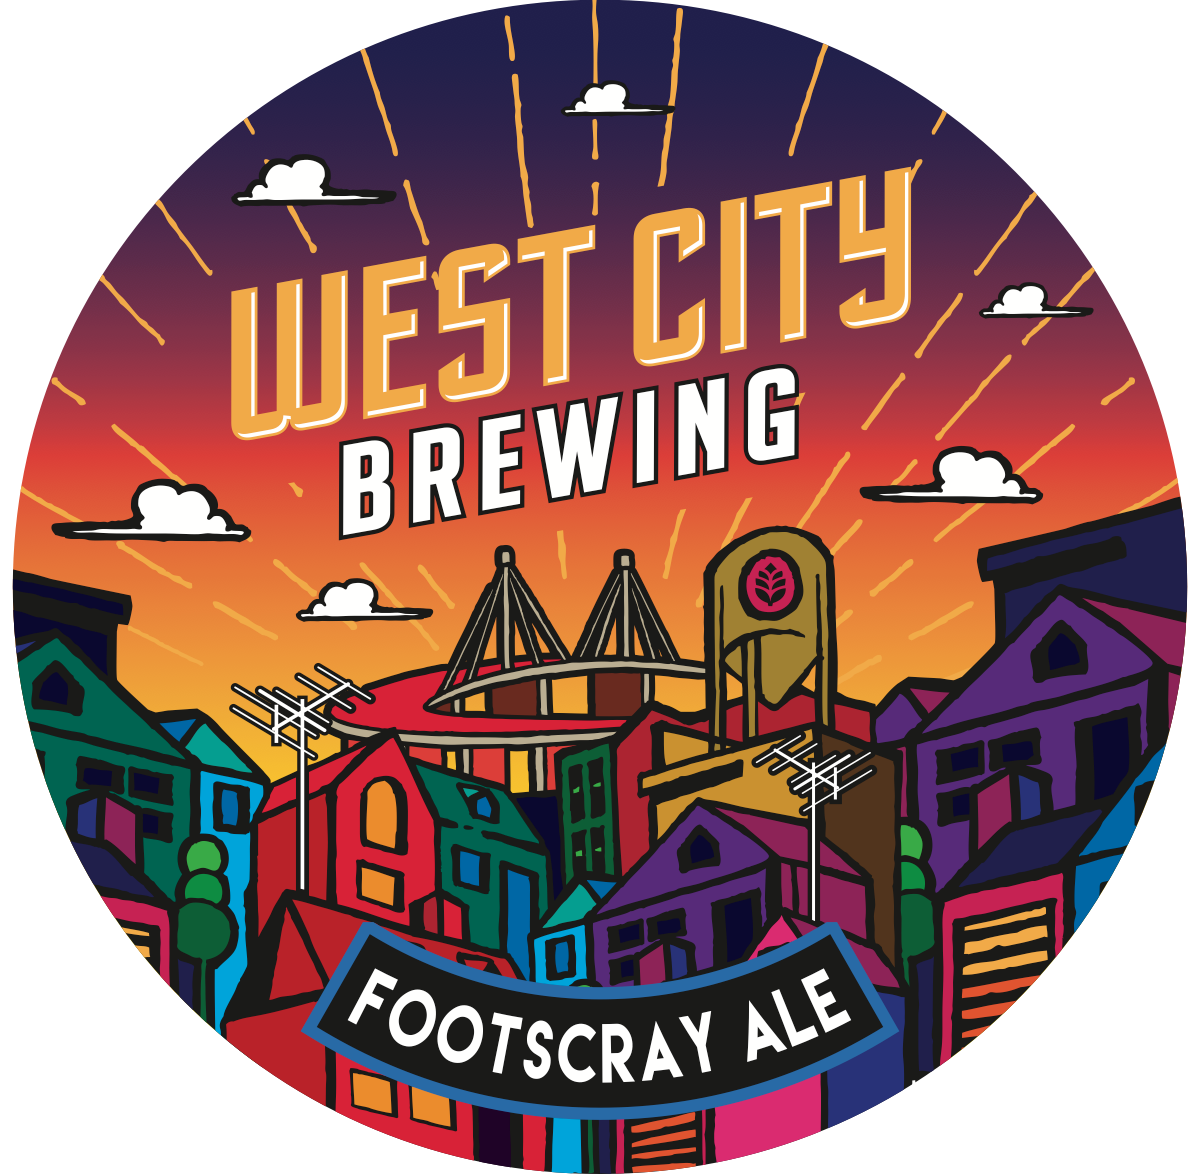 Smal redesign of Footscray Ale label and decal